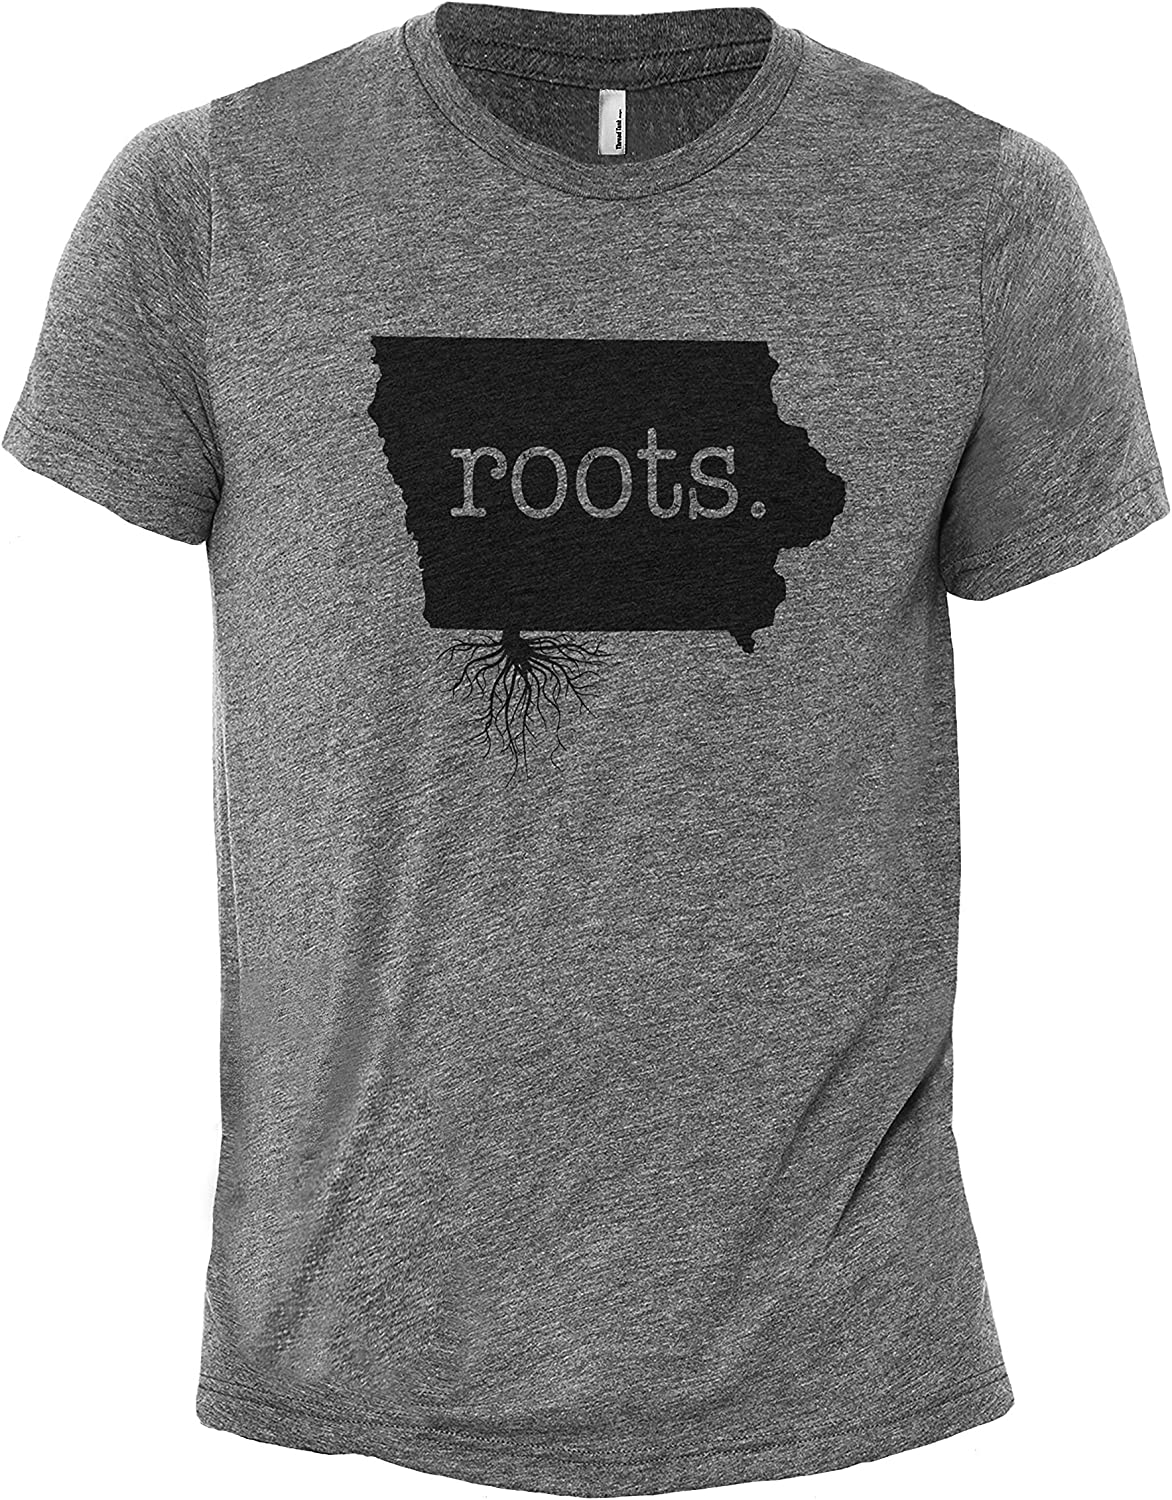 Thread Tank Home Roots State Iowa IA Men's Modern Fit T-Shirt Printed Graphic Tee